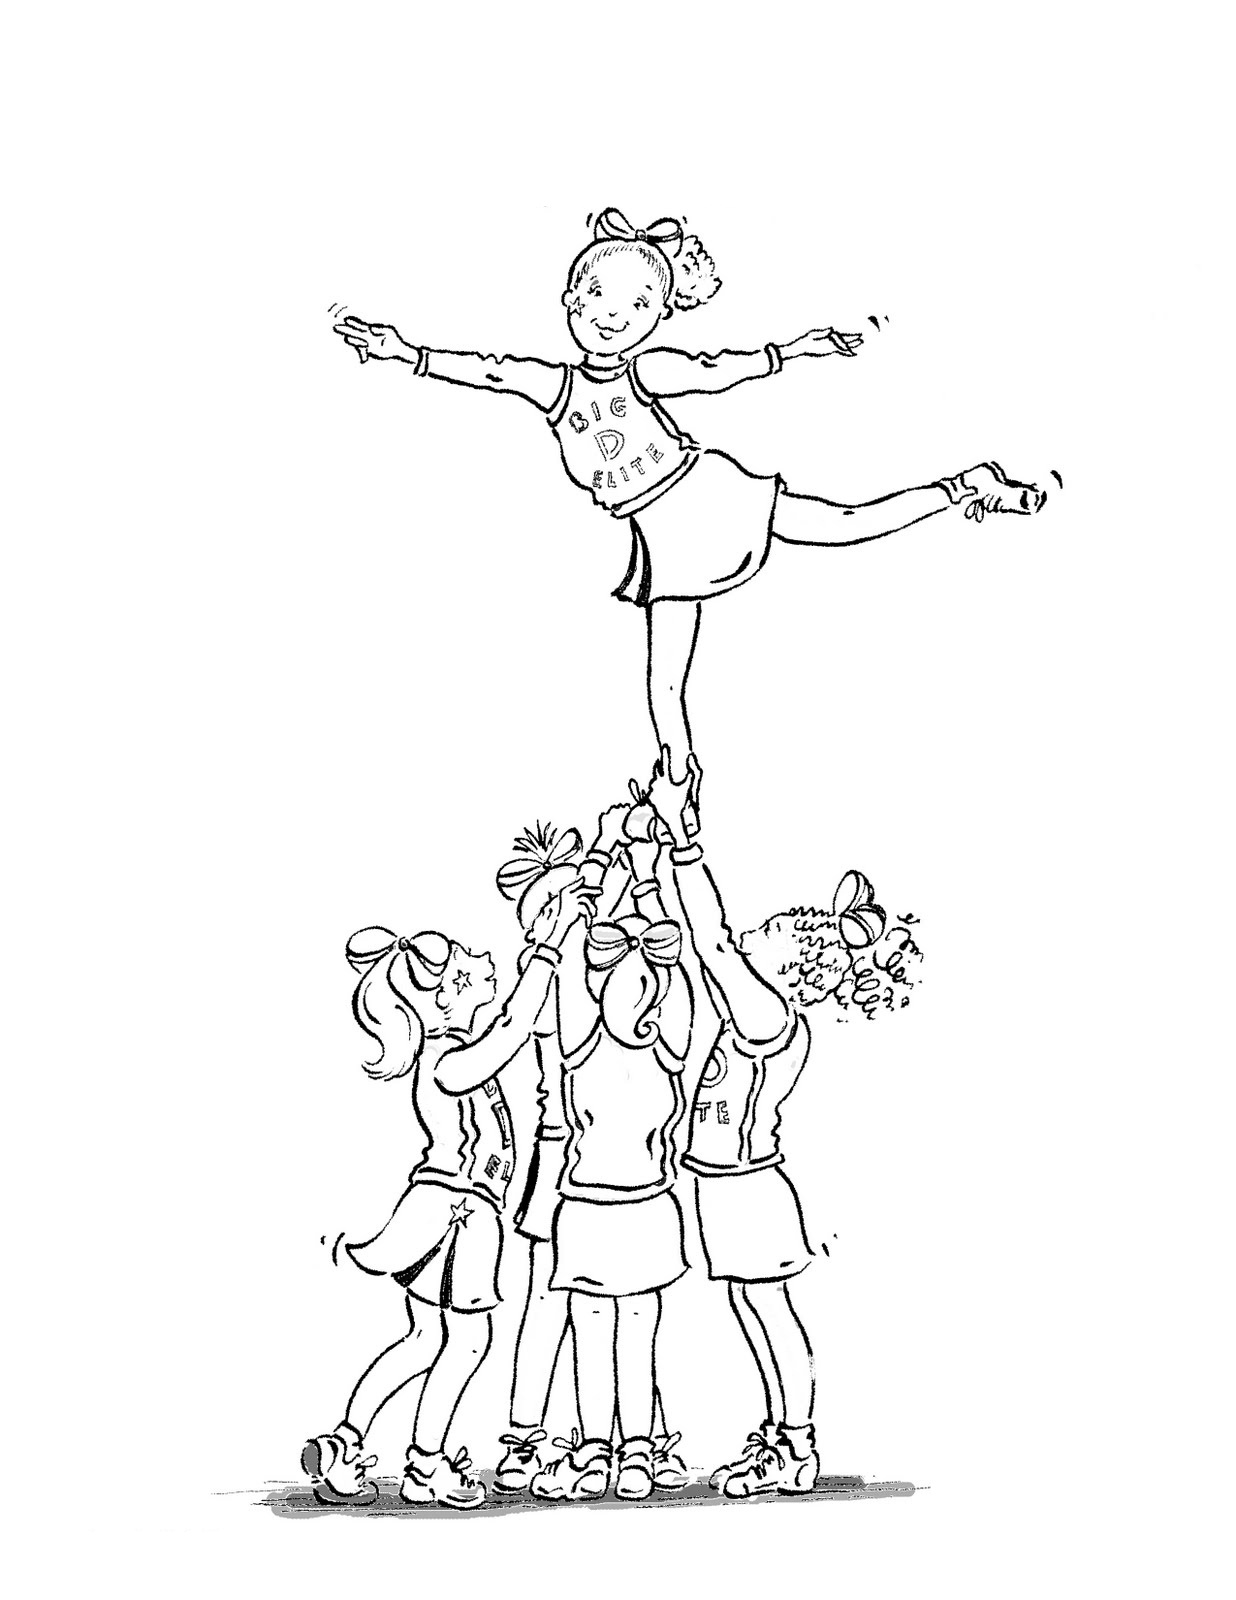 cheerleader coloring pages Free Printable Cheerleading Coloring Pages For Kids cheerleader coloring pages